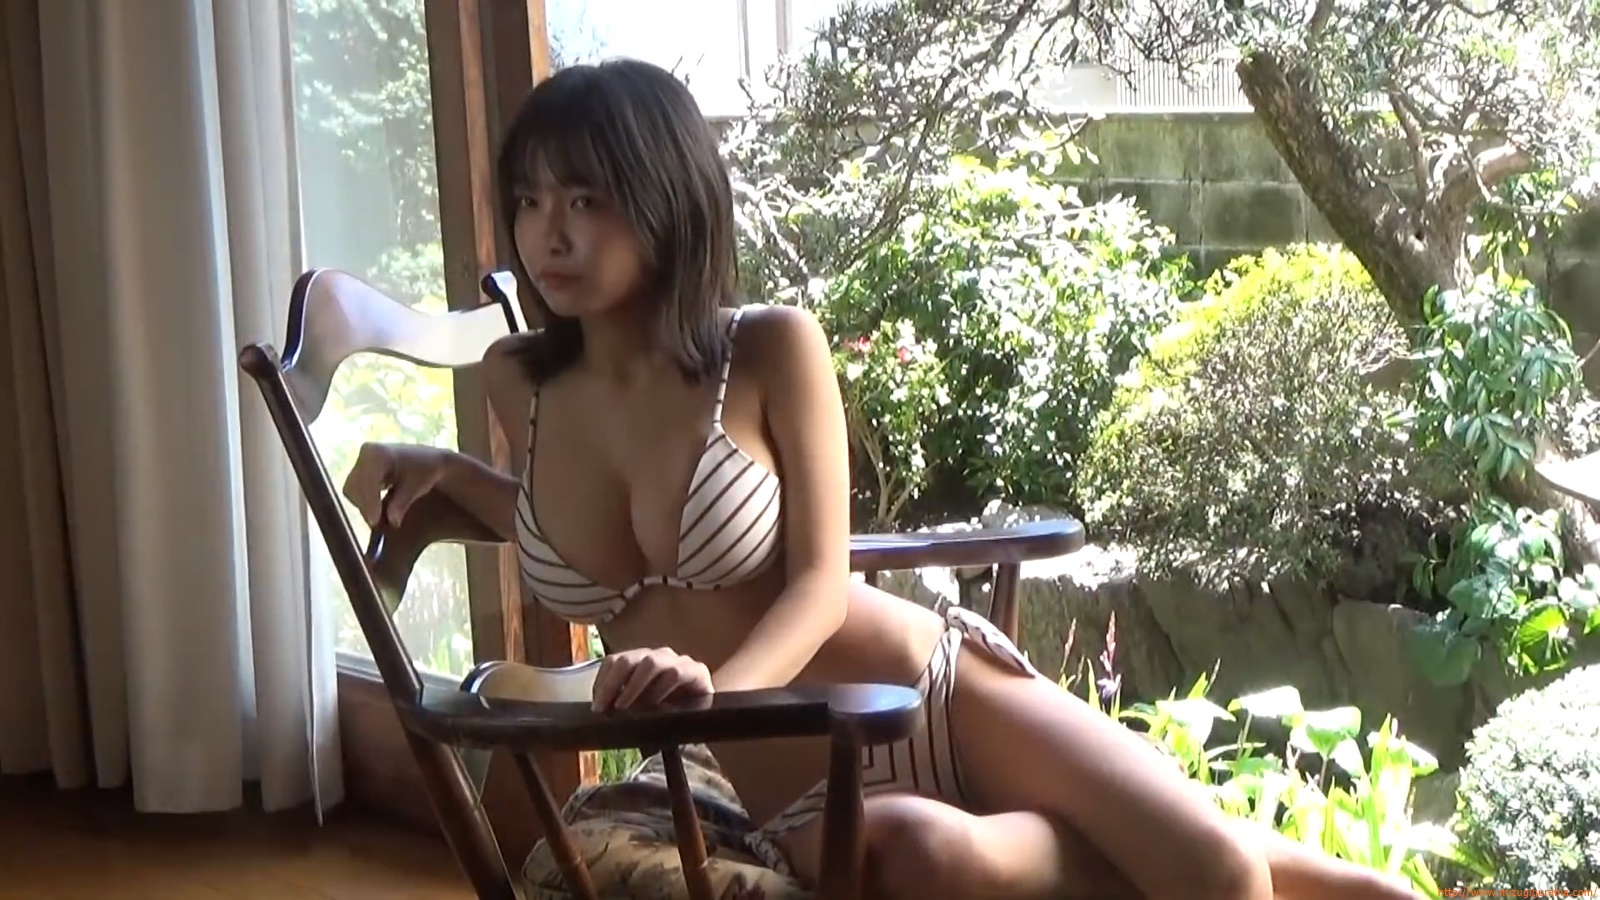 The gravure that makes all Japan cheer up Rio Teramoto 008